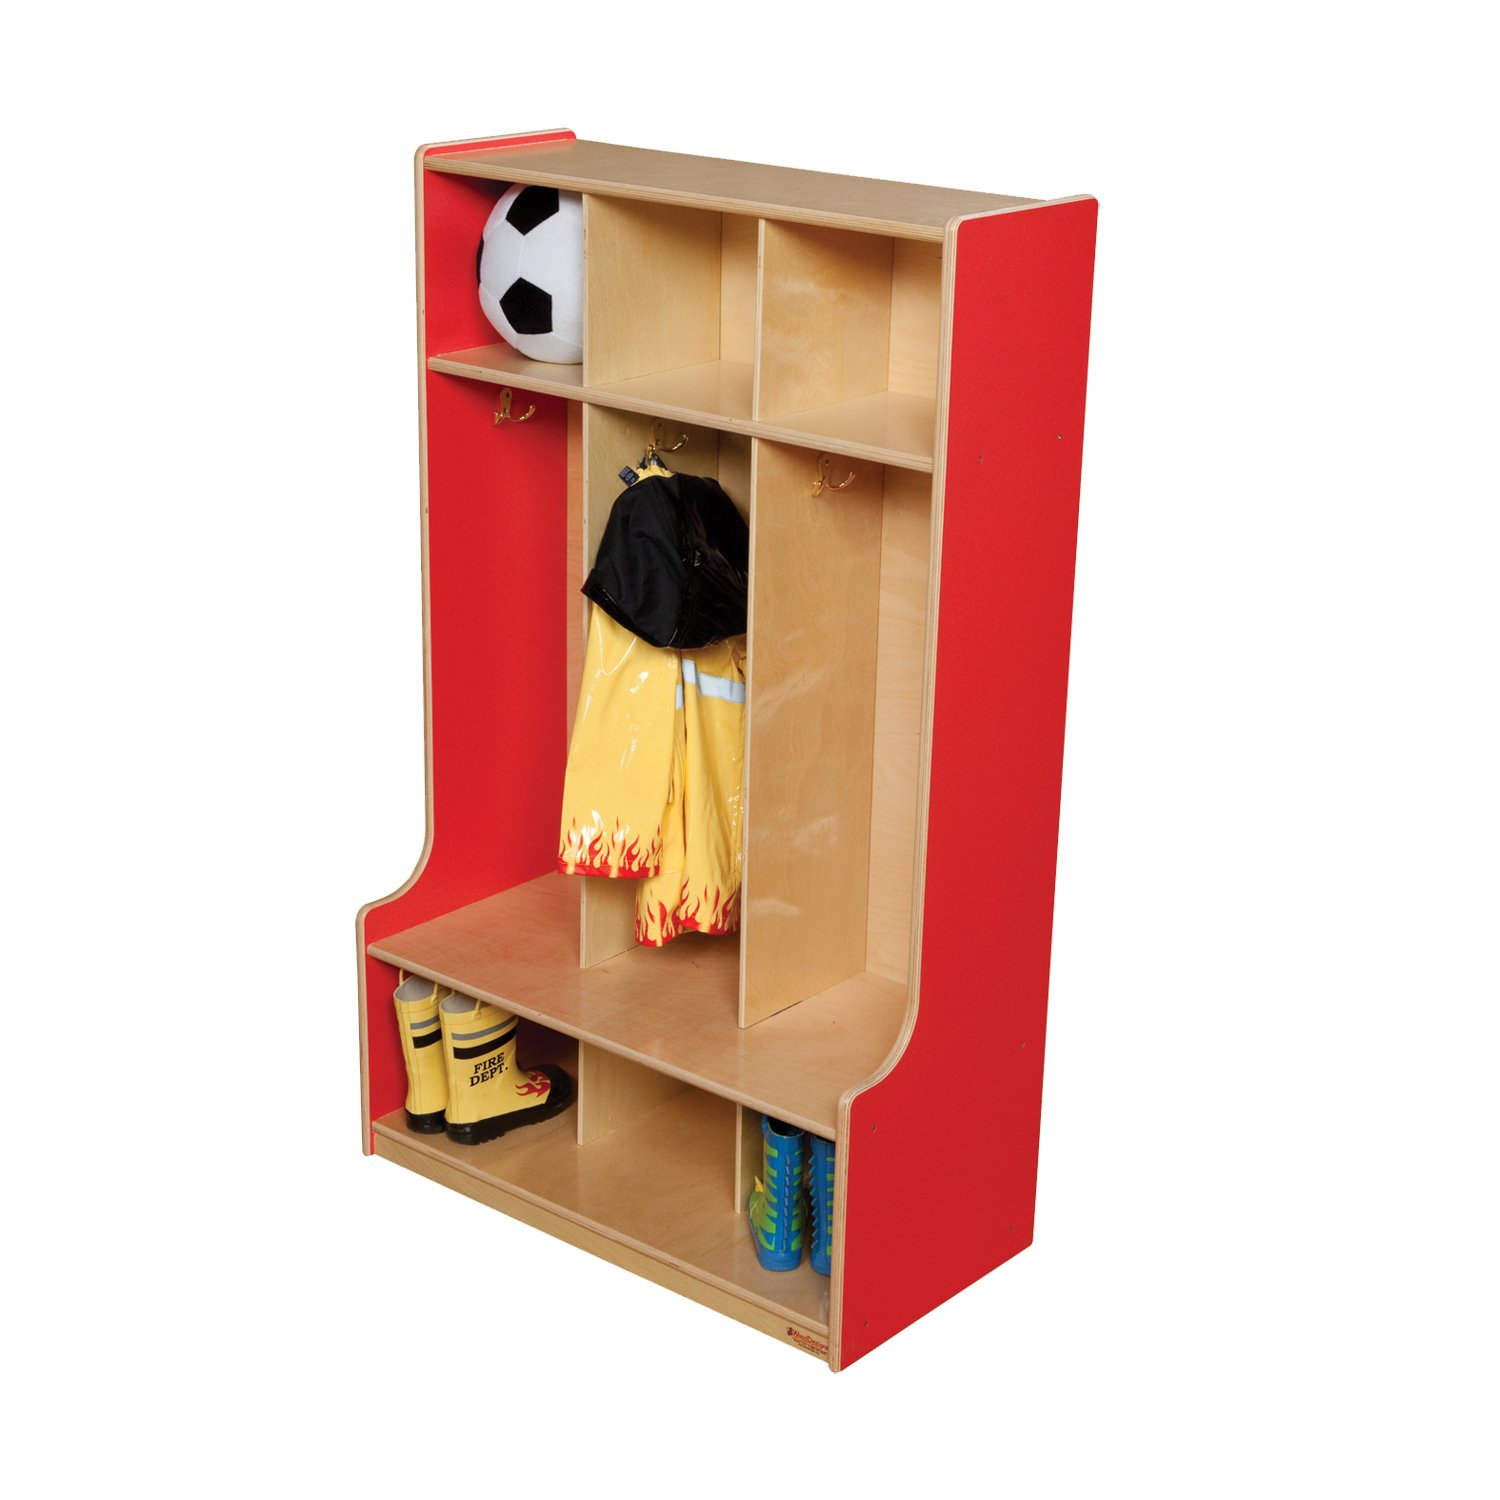 Wood Designs 51003R Strawberry Red 3 Section Seat Locker, 49'' Height, 18'' Width, 51.5'' Length